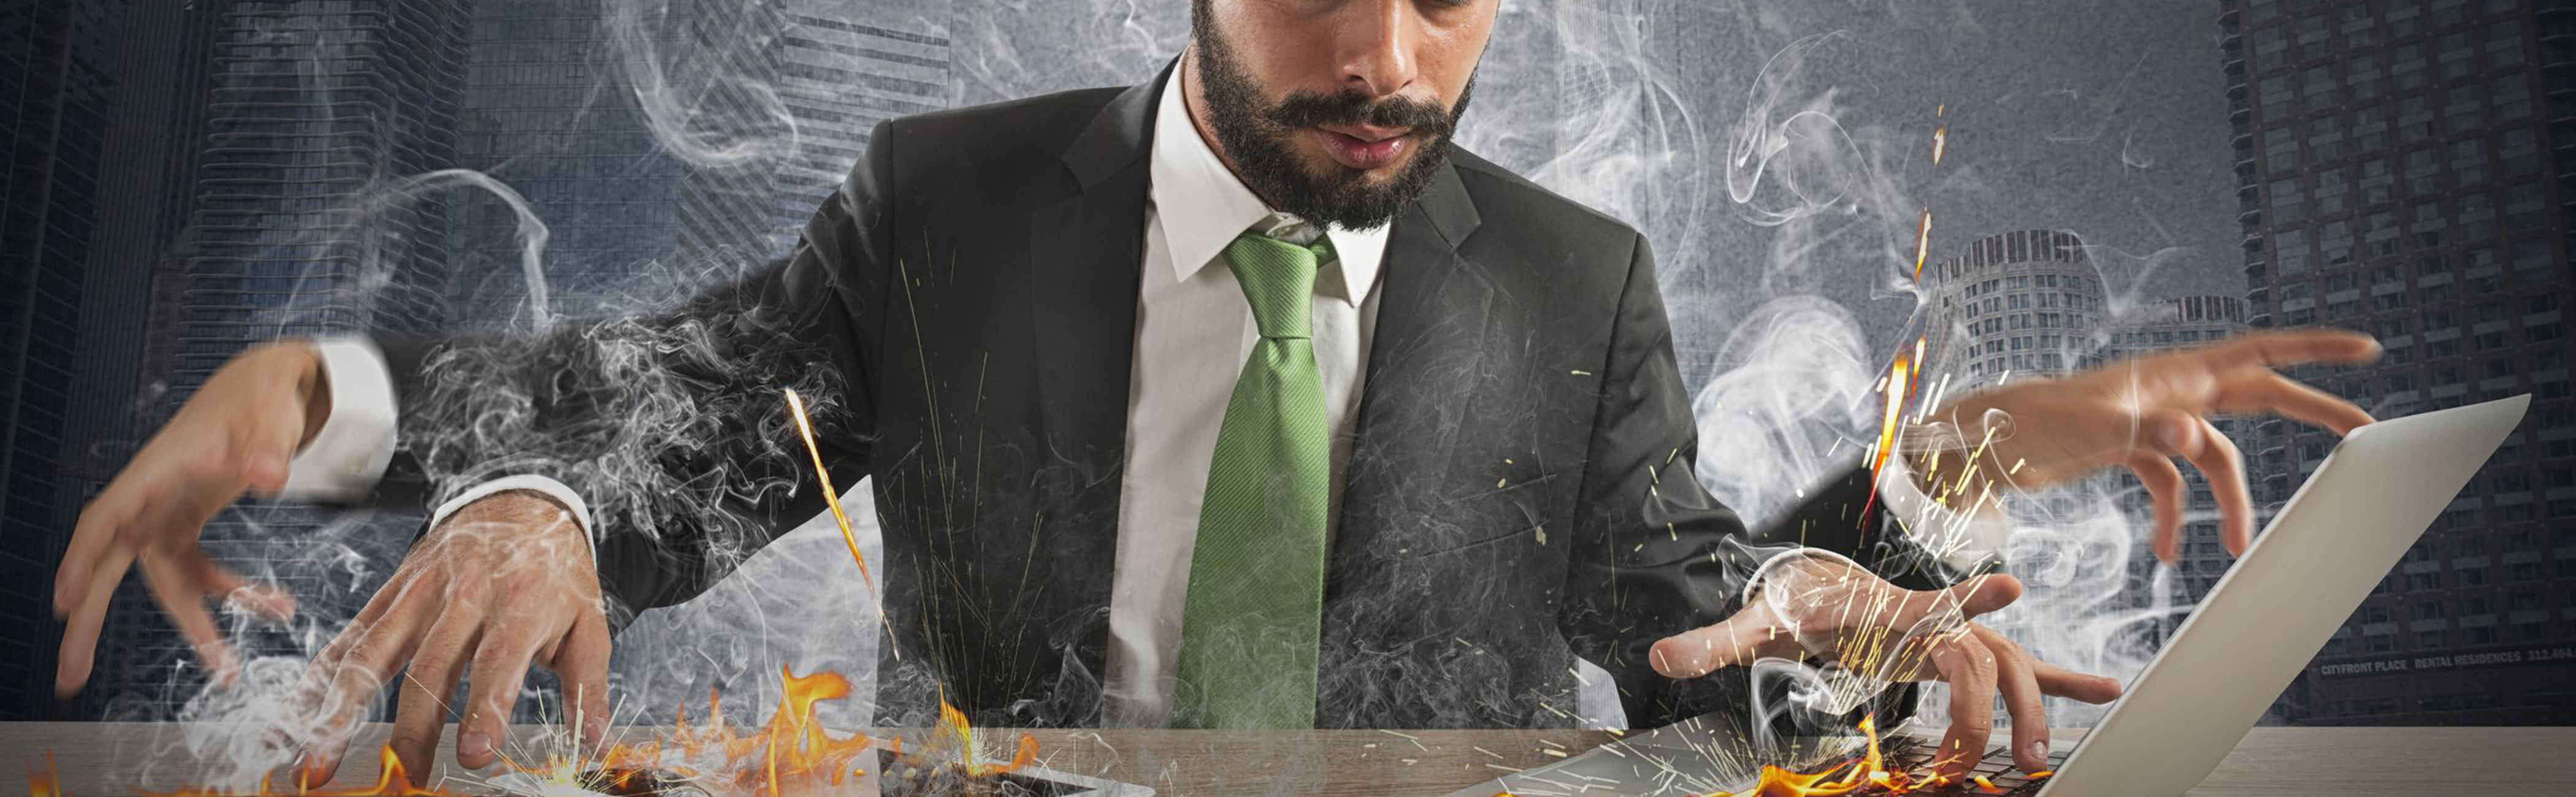 Businessman working so fast, flames lick out of his computer and phone.